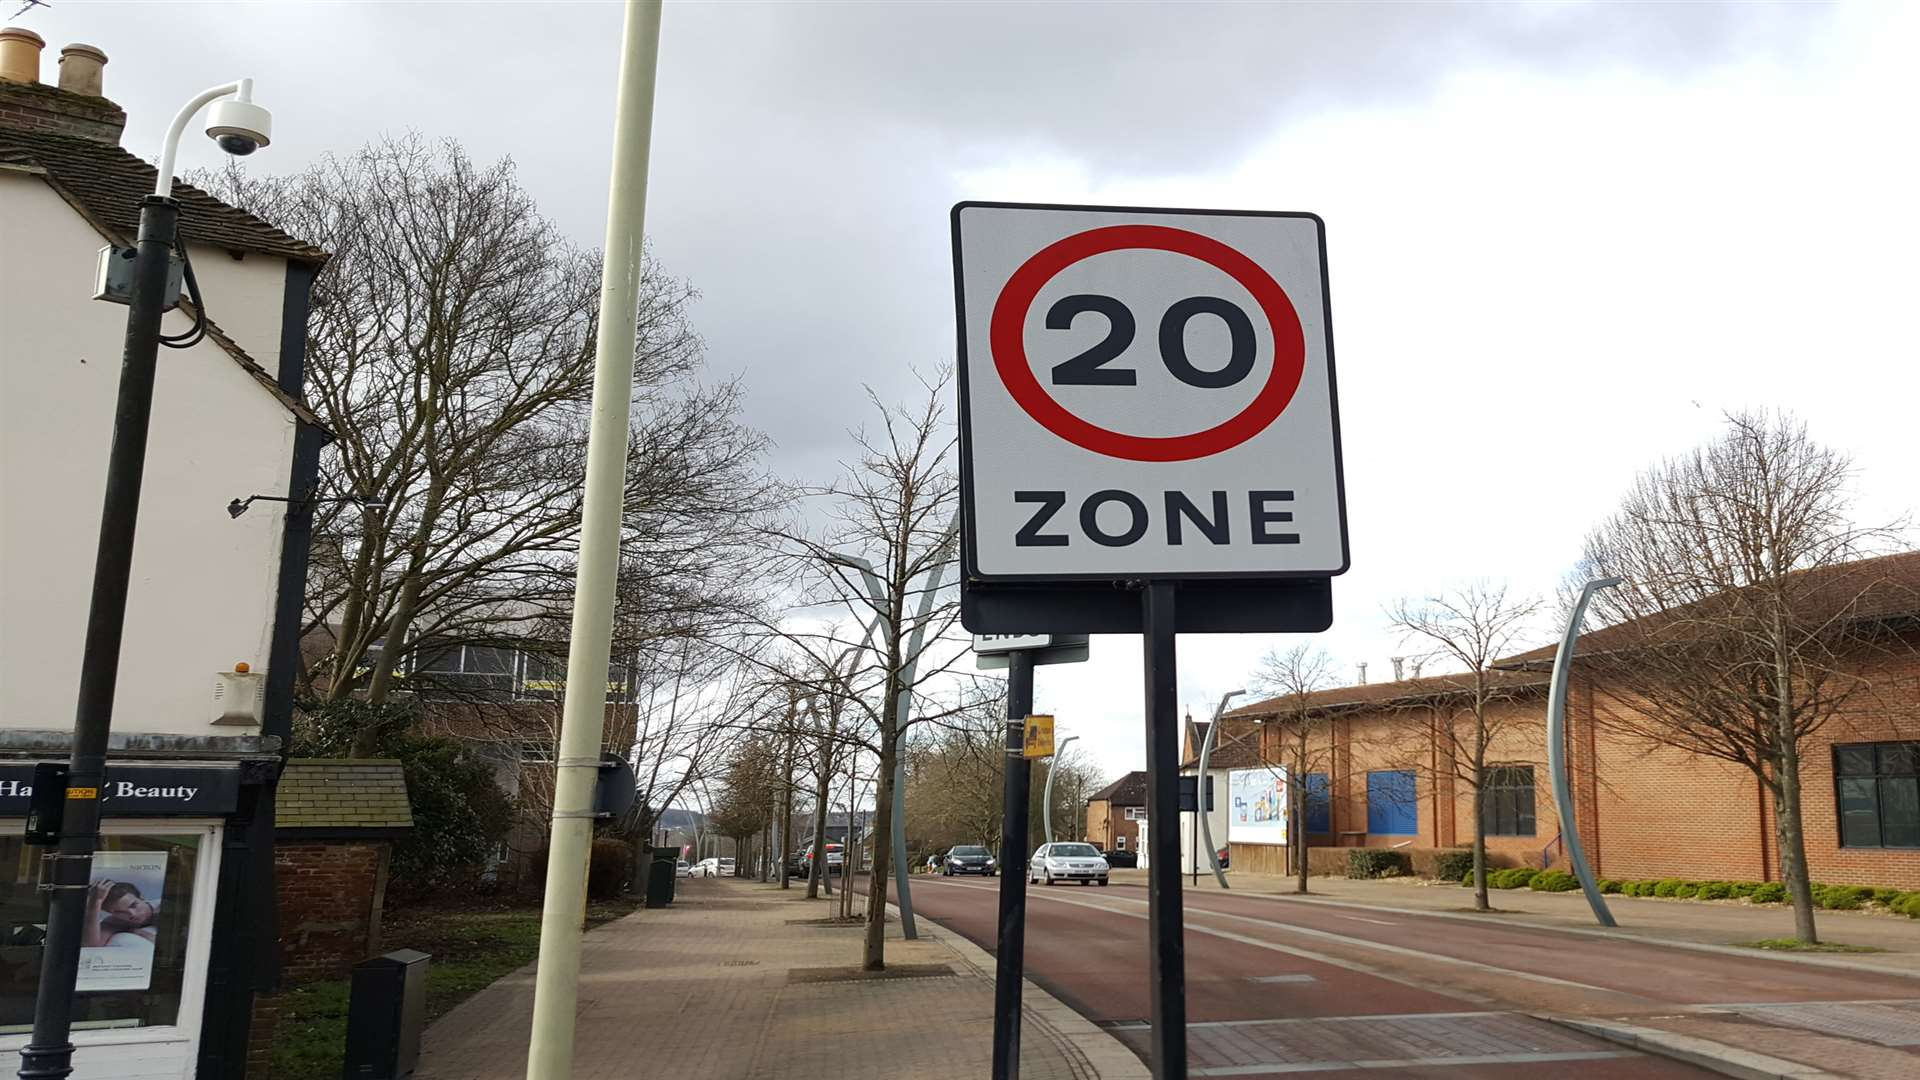 Bowles was caught travelling 70mph in the 20 zone